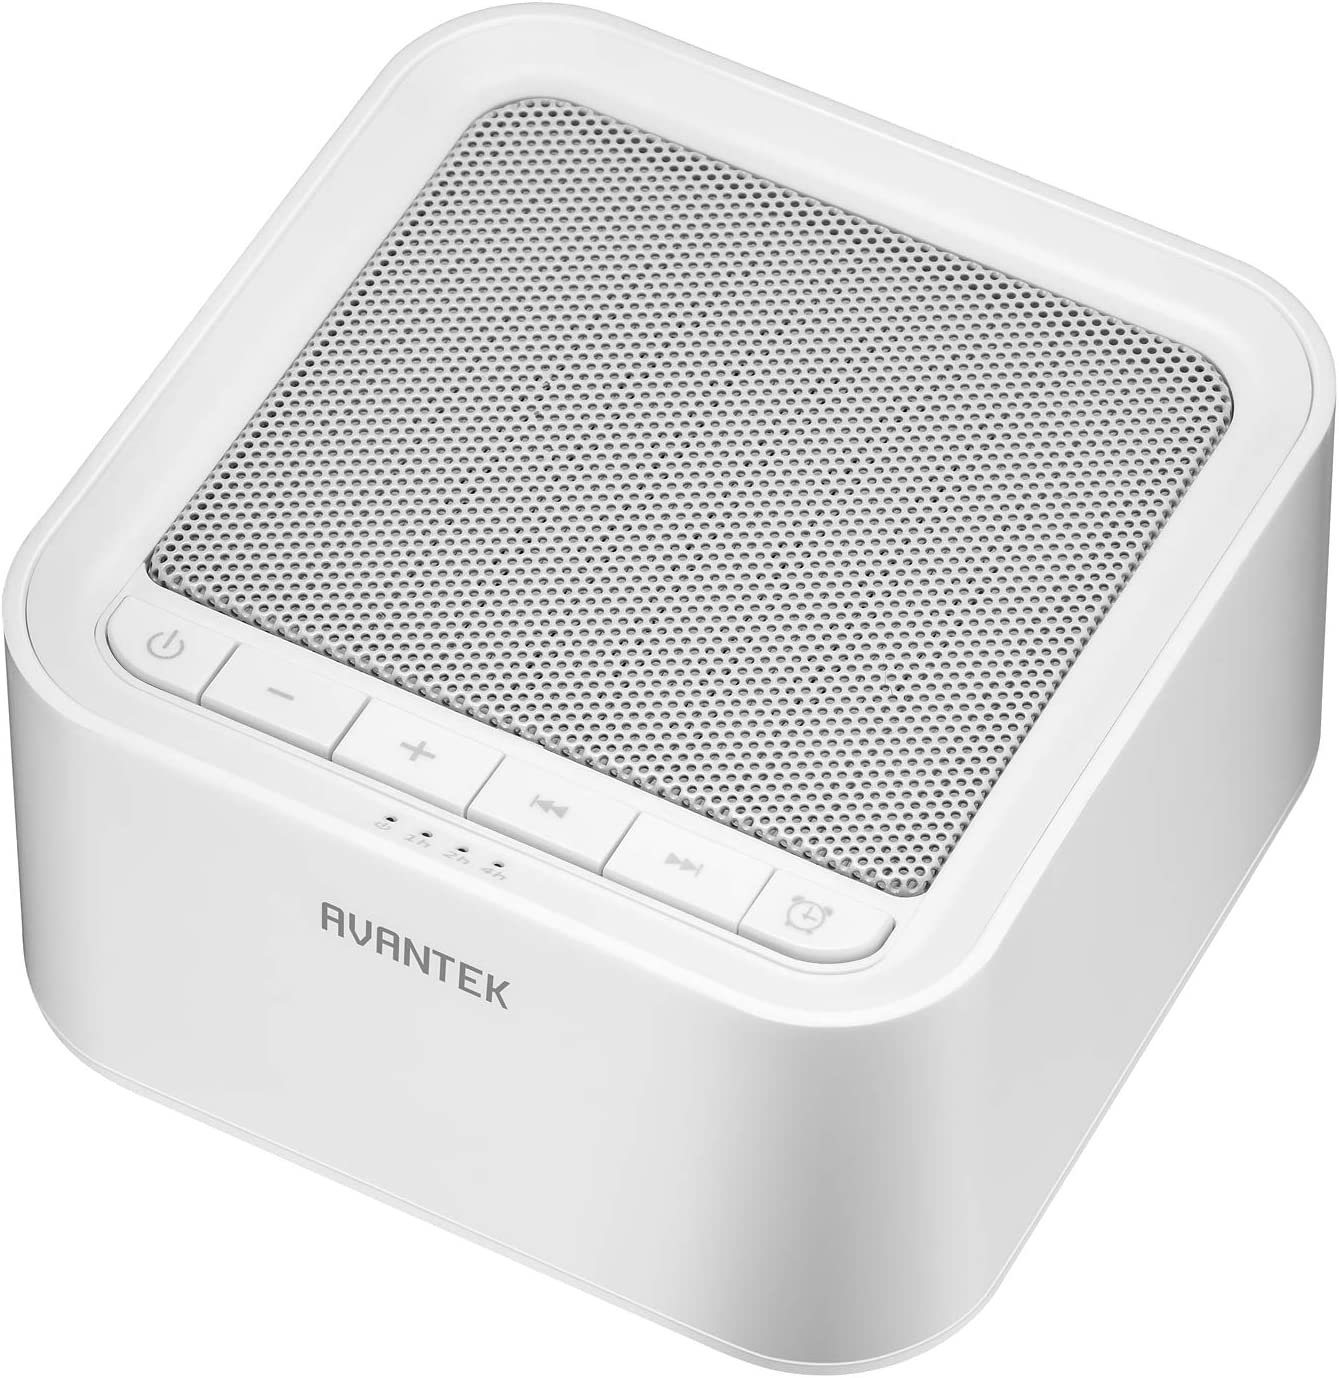 Top 10 Best White Noise Machine For Tinnitus Reviews in 2021 5